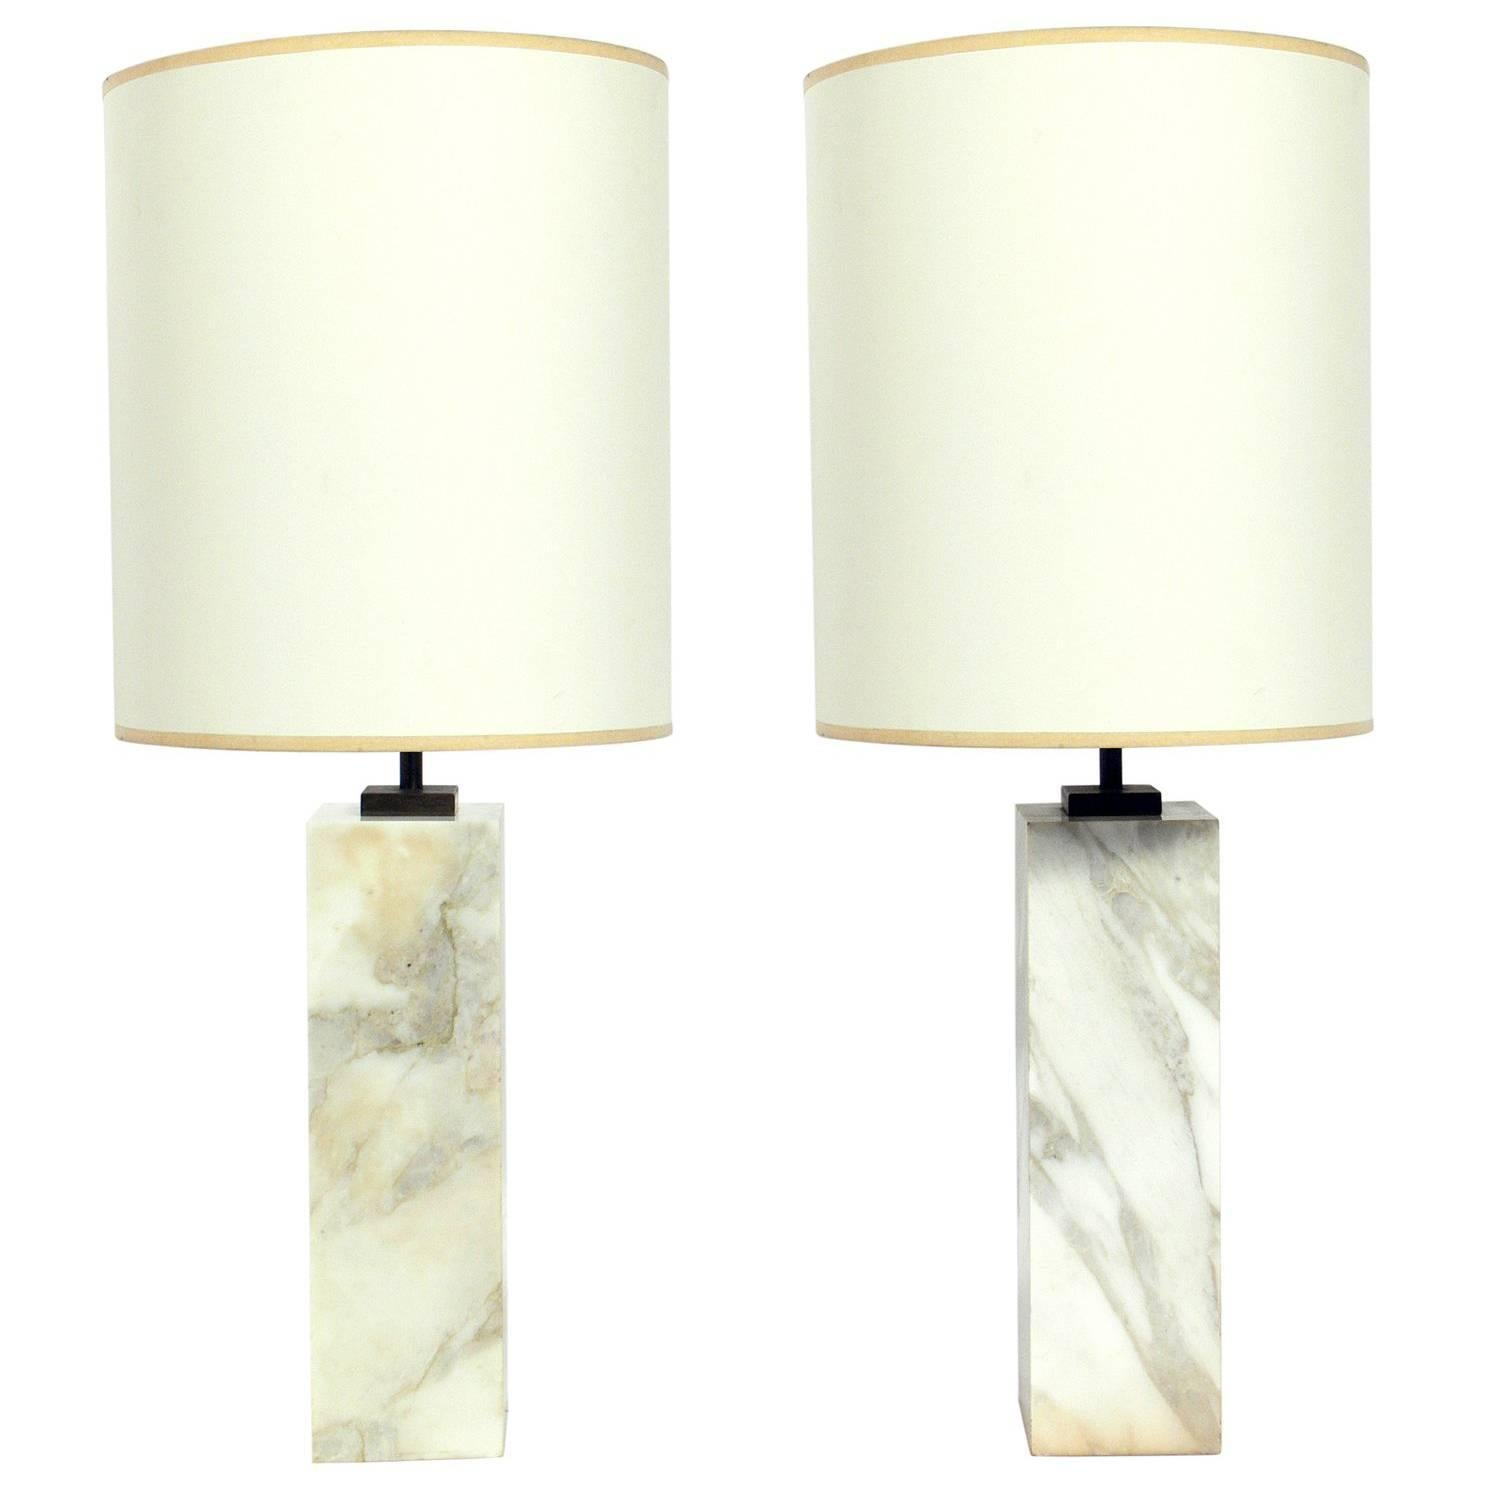 lamp coral red the eight over lampshade white products marble